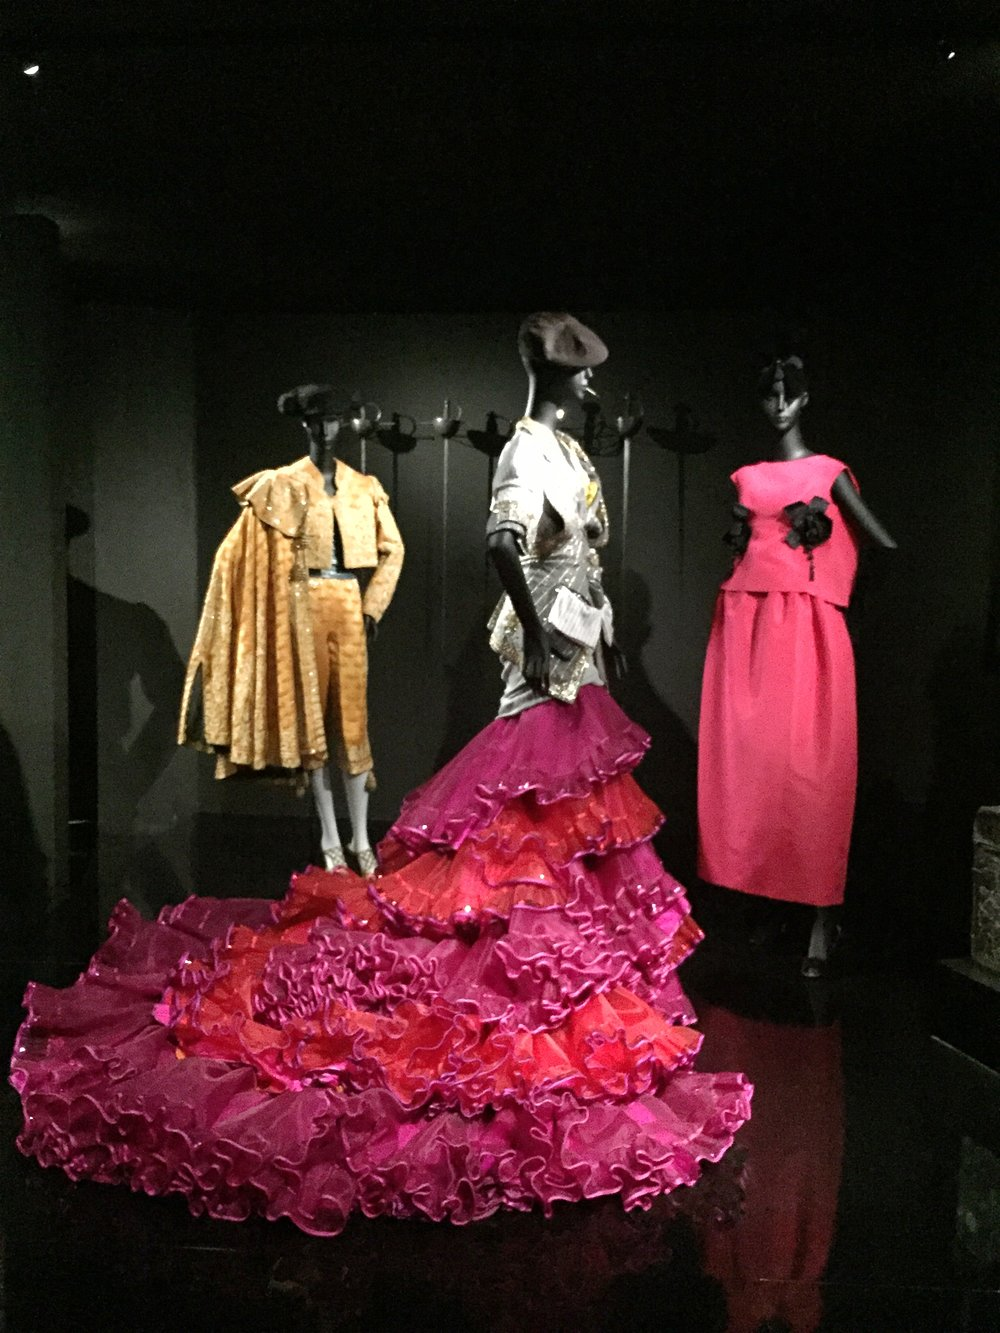 Paris-Dior-Exhibition